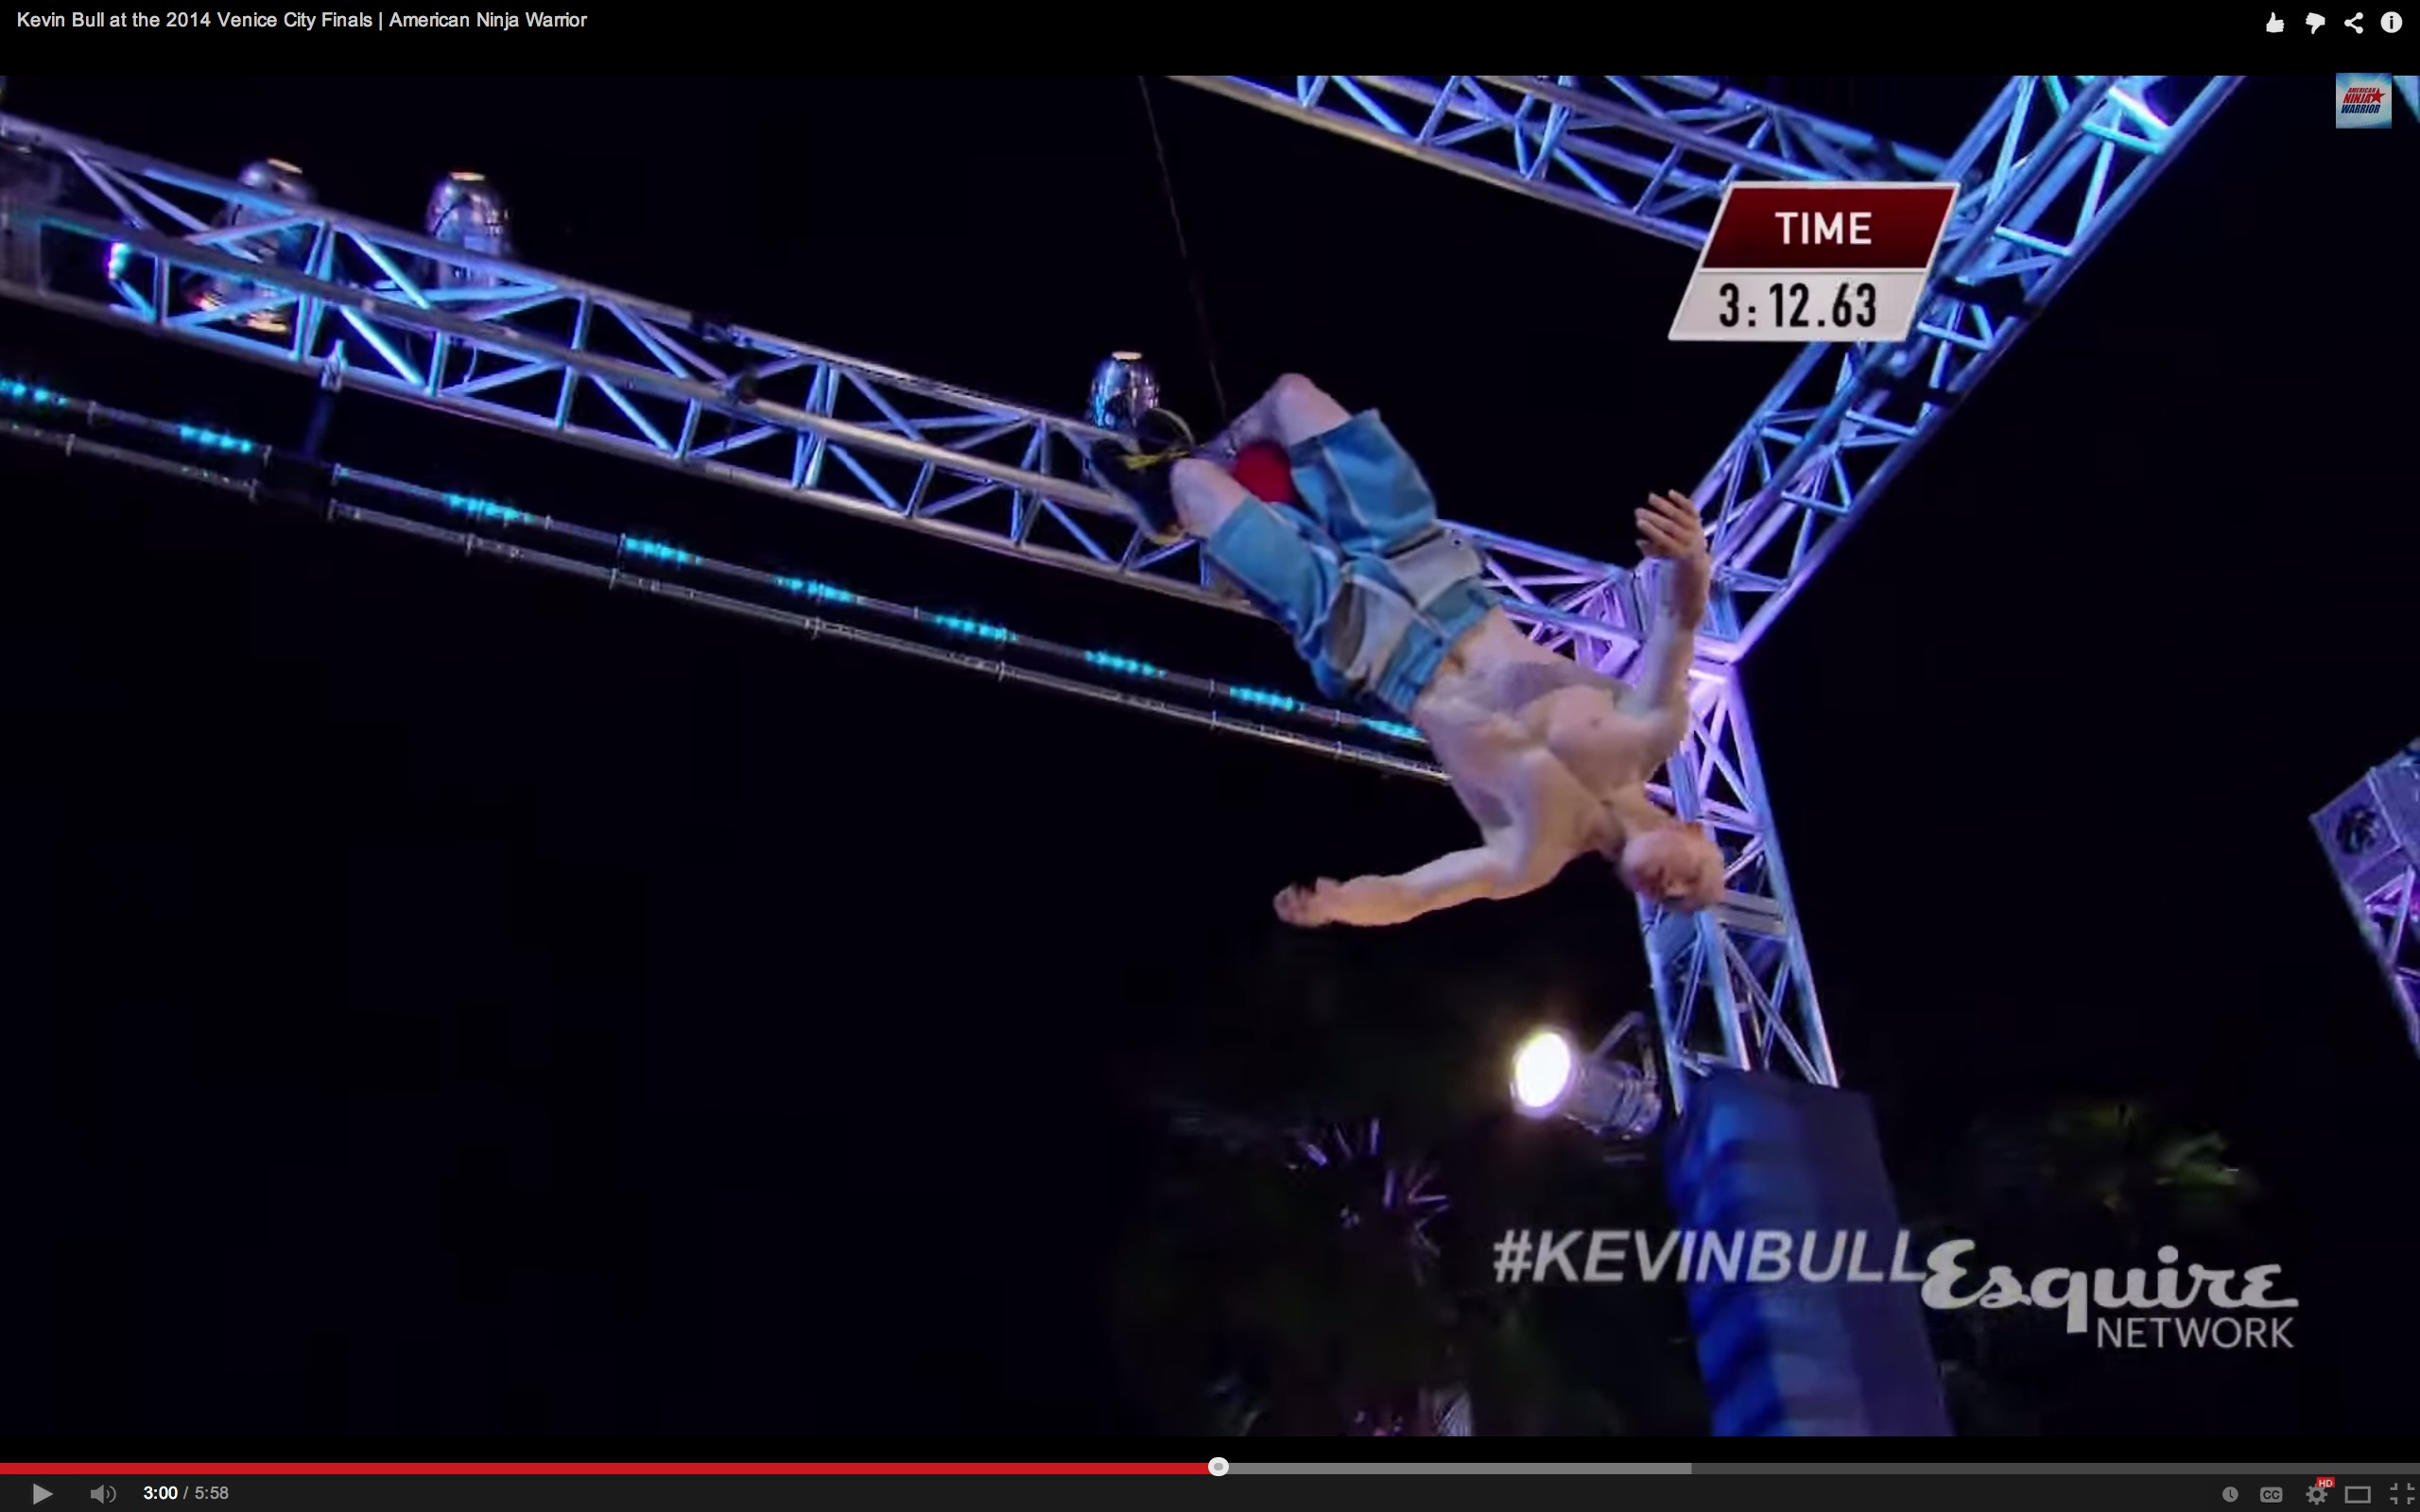 Kevin Bull At The 2014 Venice City Finals American Ninja